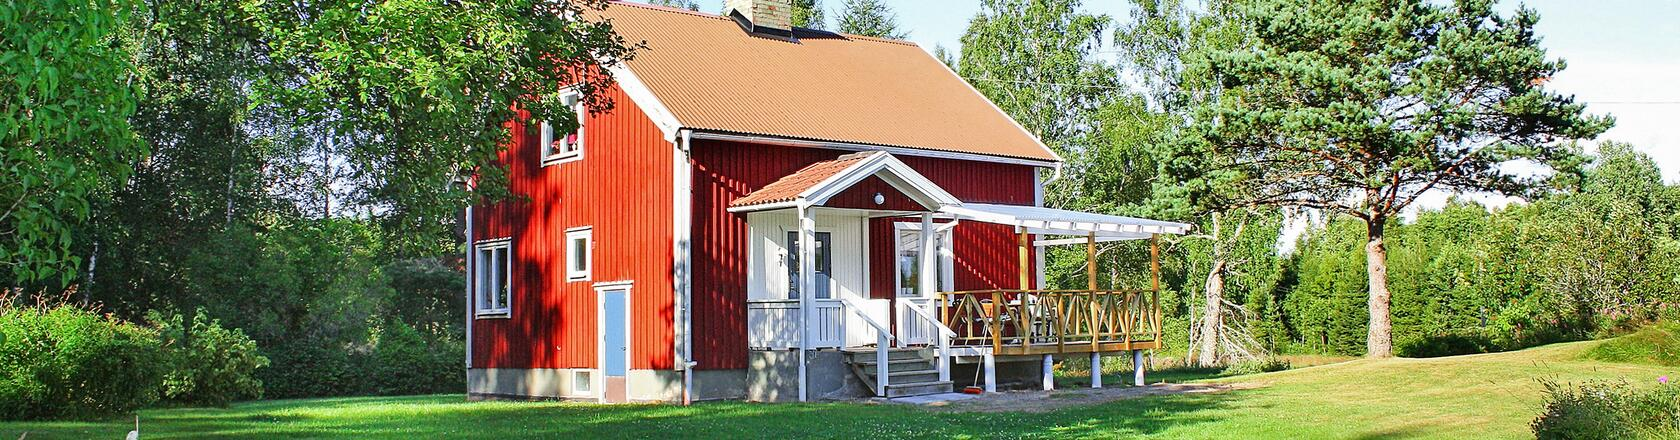 Kil in Sweden — Rent a holiday home with DanCenter